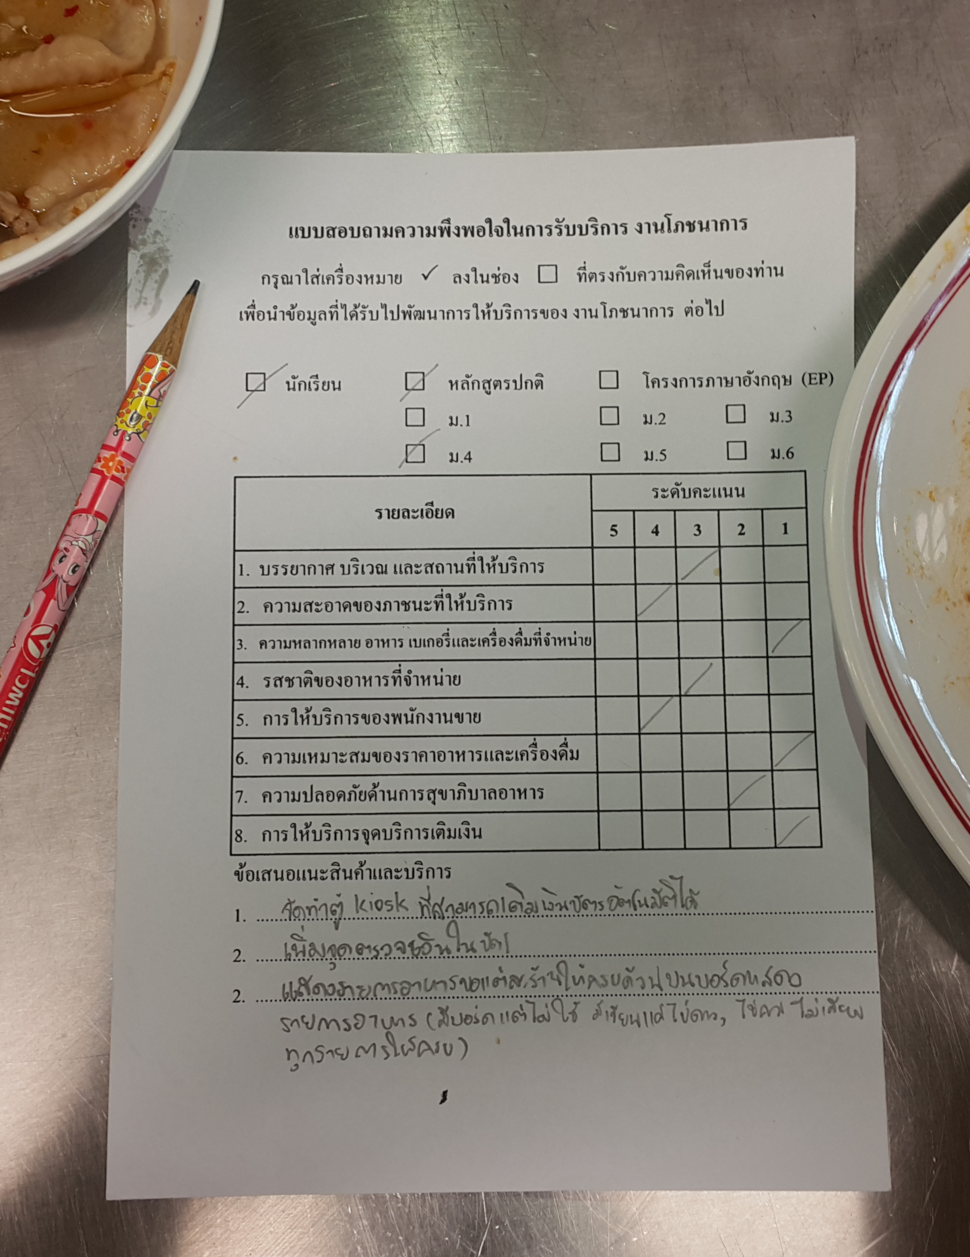 Questionaire in Thai